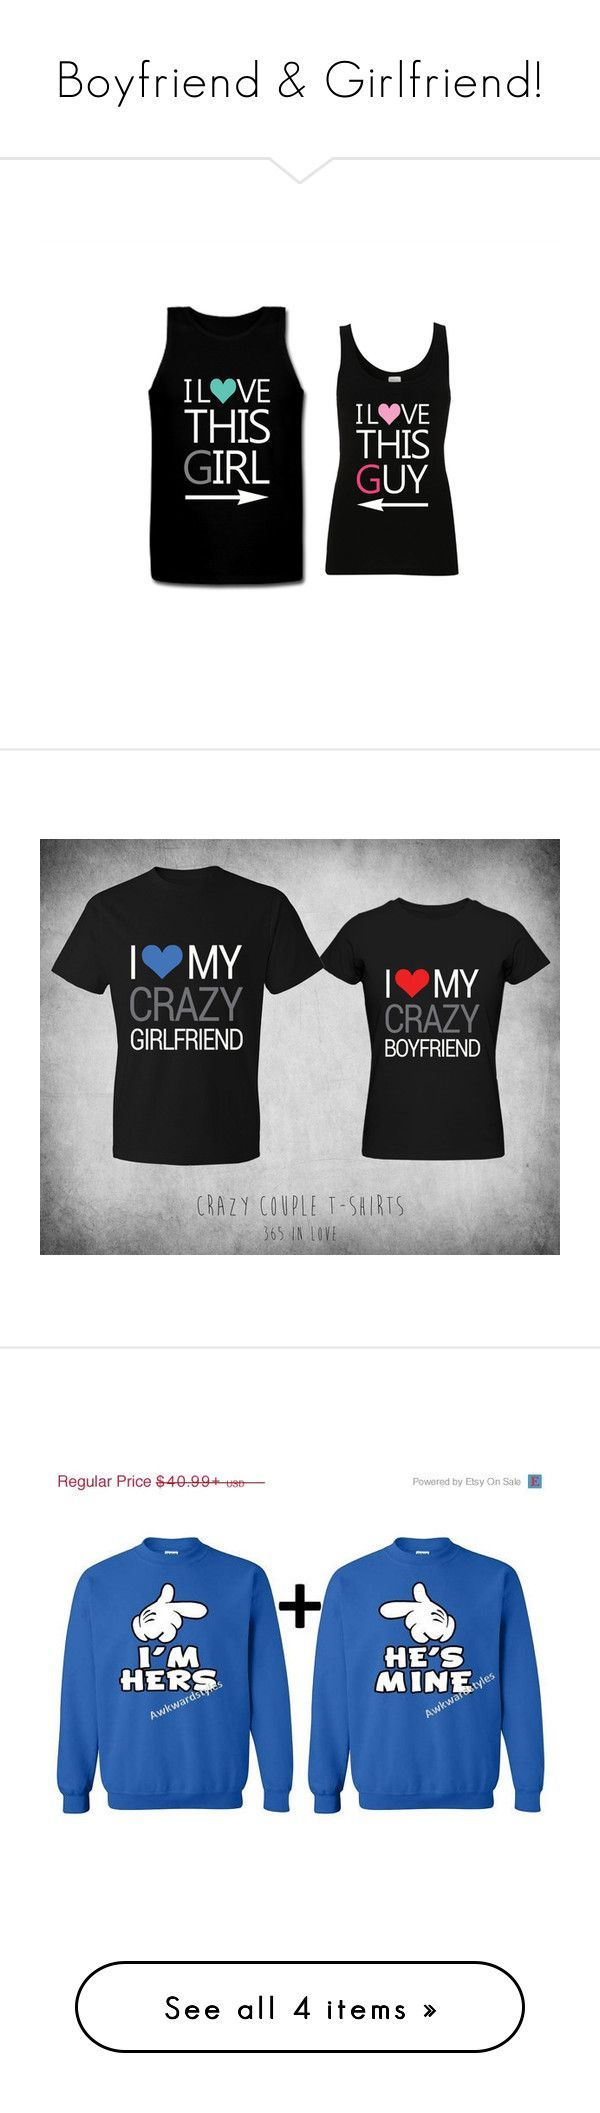 """""""Boyfriend & Girlfriend!"""" by veronica-floyd ❤ liked on Polyvore featuring tops, shirts, tank tops, shirt tops, cotton sleeveless tops, sleeveless tank, cotton tank, cotton shirts, t-shirts and couples"""